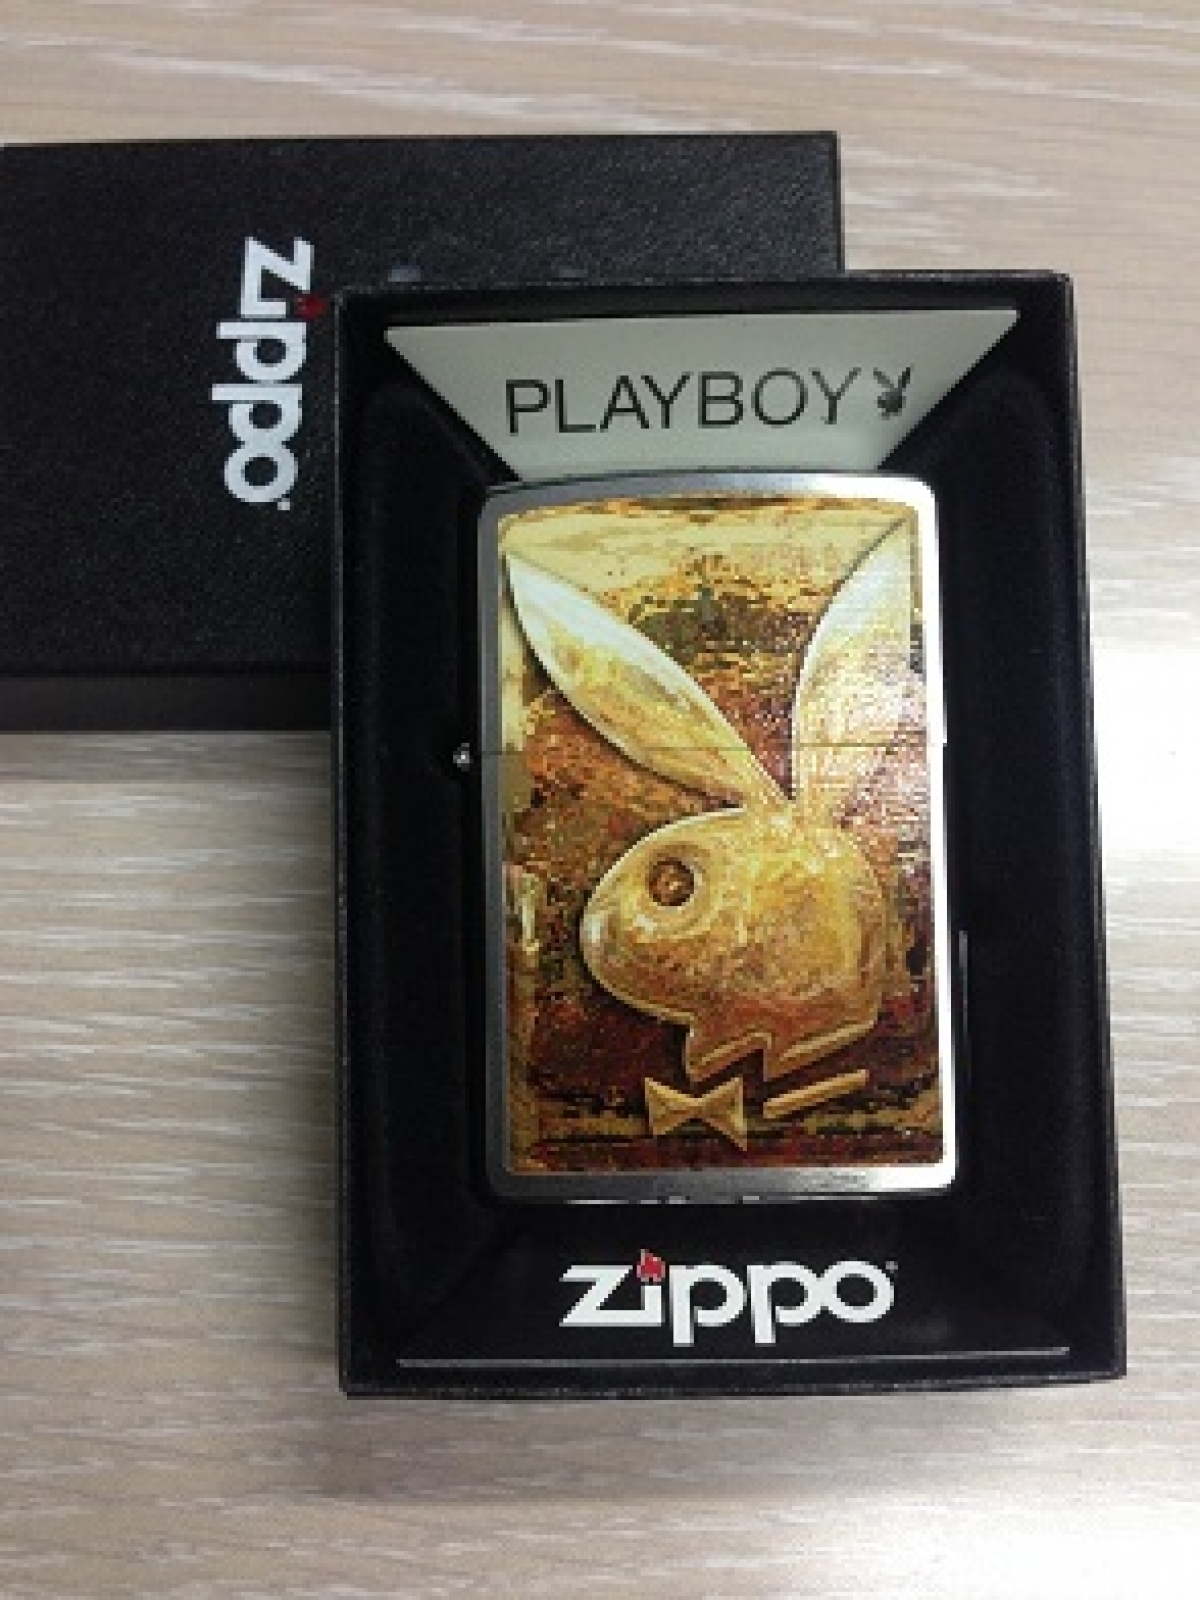 Zippo Pocket Lighter 2003939 200 Playboy